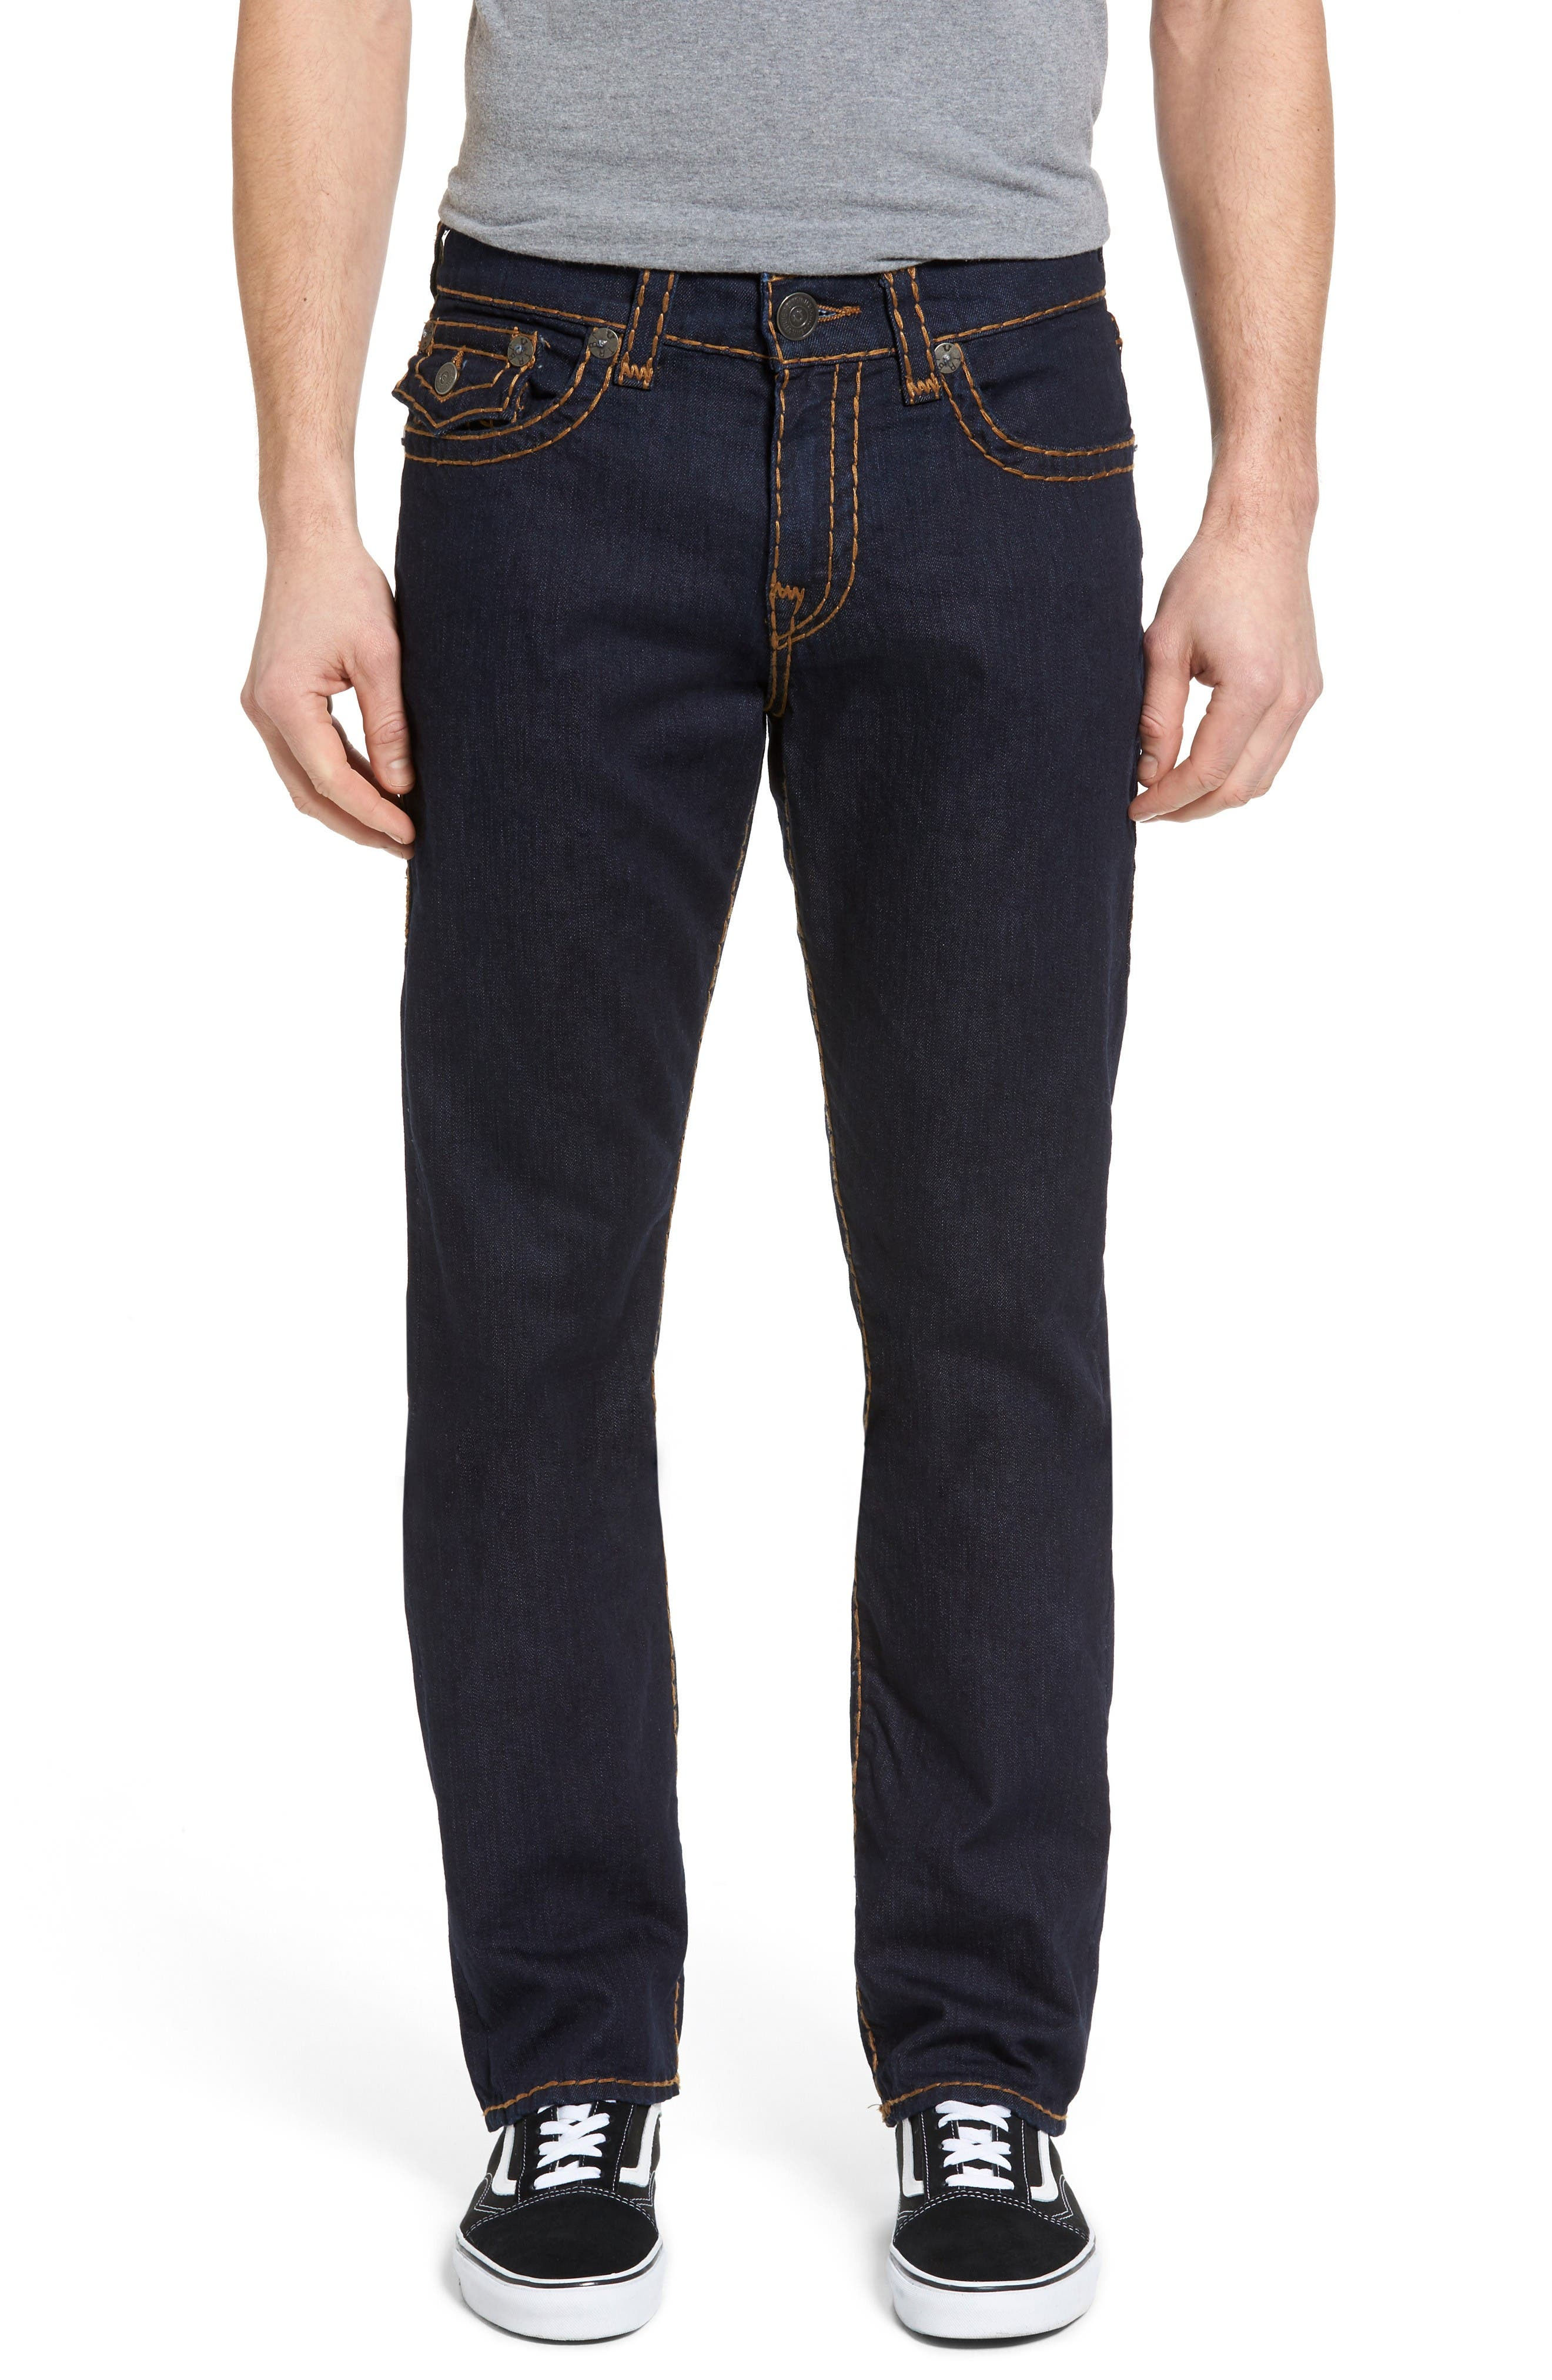 Alternate Image 1 Selected - True Religion Brand Jeans Ricky Relaxed Fit Jeans (Body Rinse)